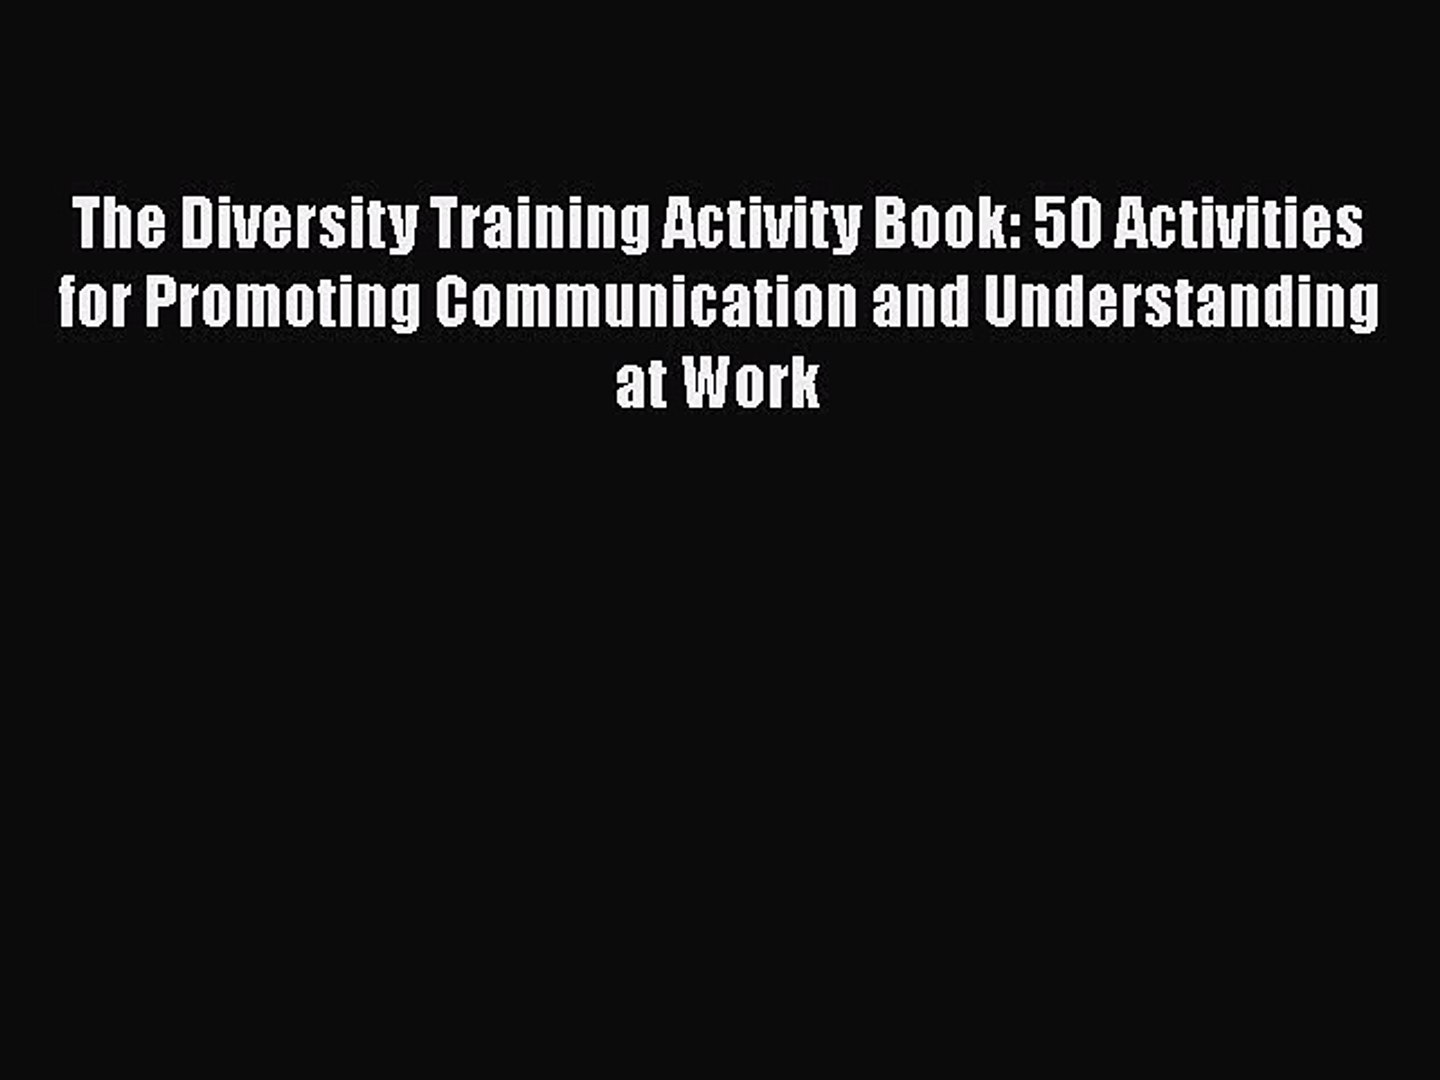 50 Activities for Promoting Communication and Understanding at Work The Diversity Training Activity Book